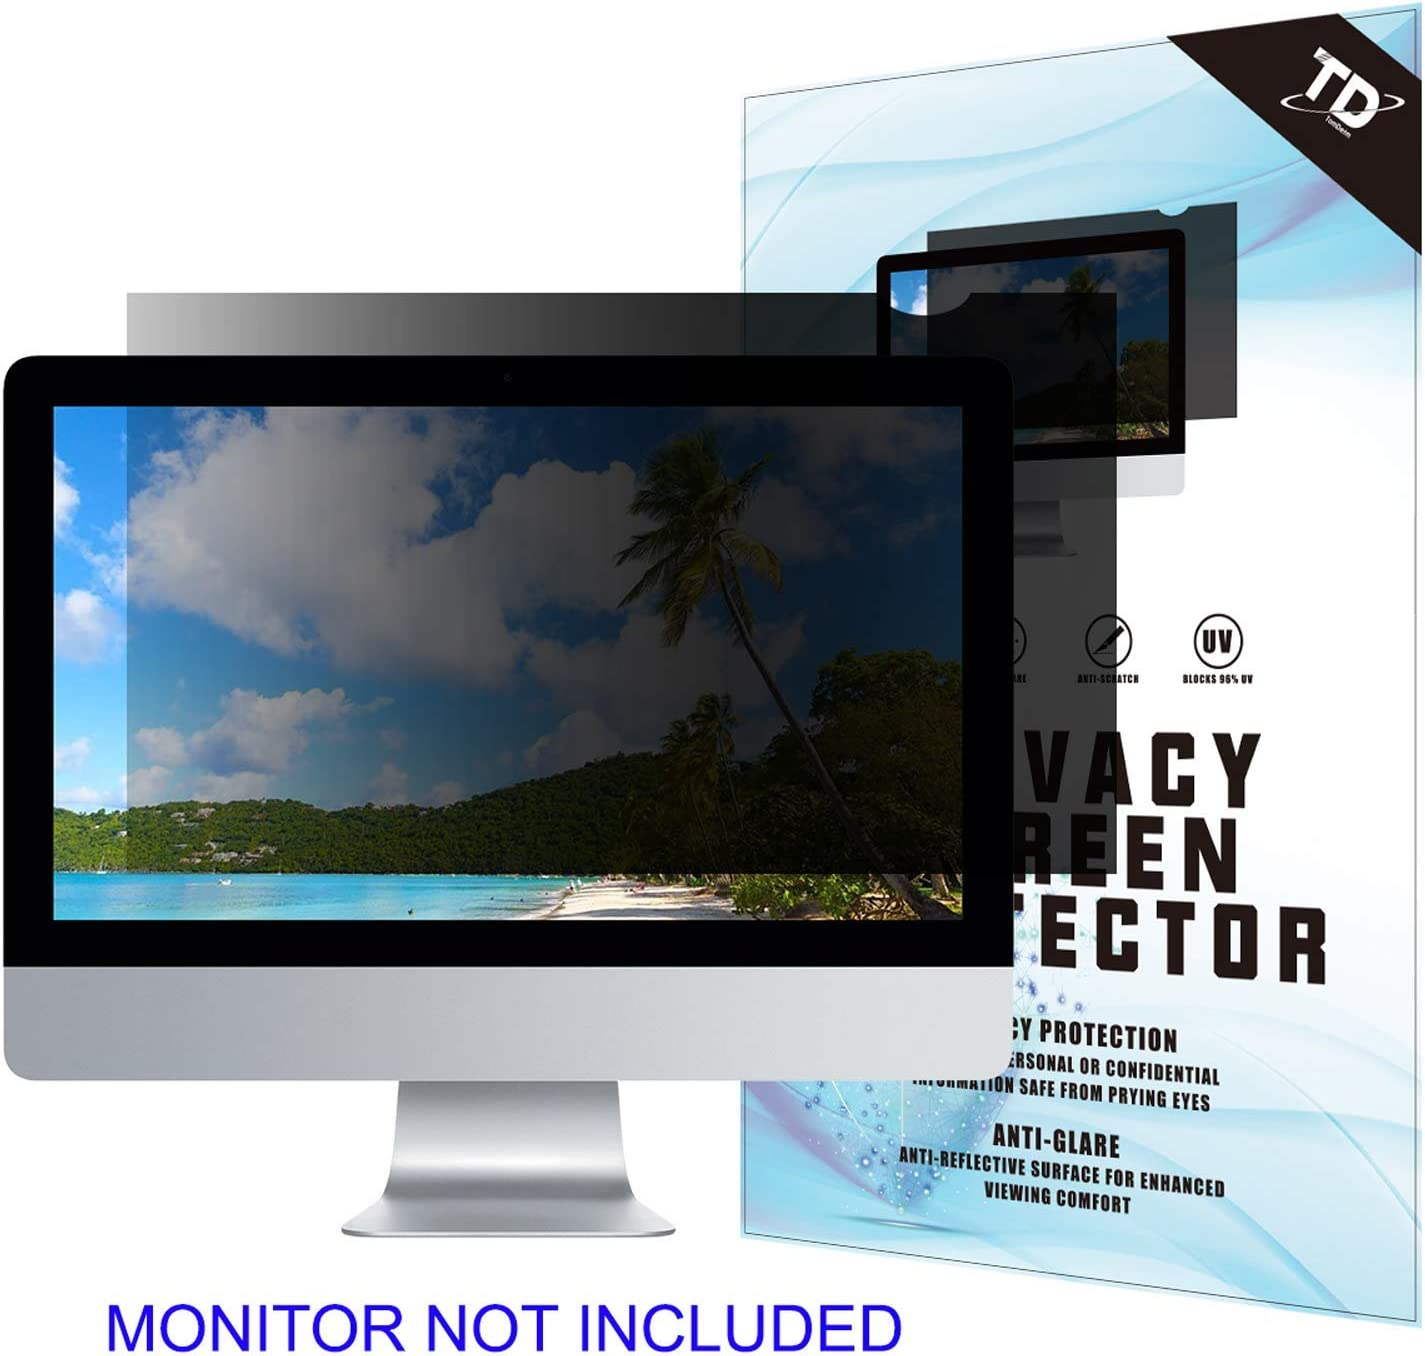 19''W Inch Privacy Screen Filter for Desktop Computer Widescreen Monitor - Anti-Glare, Blocks 96% UV,Anti-Scratch with 16:10 Aspect Ratio